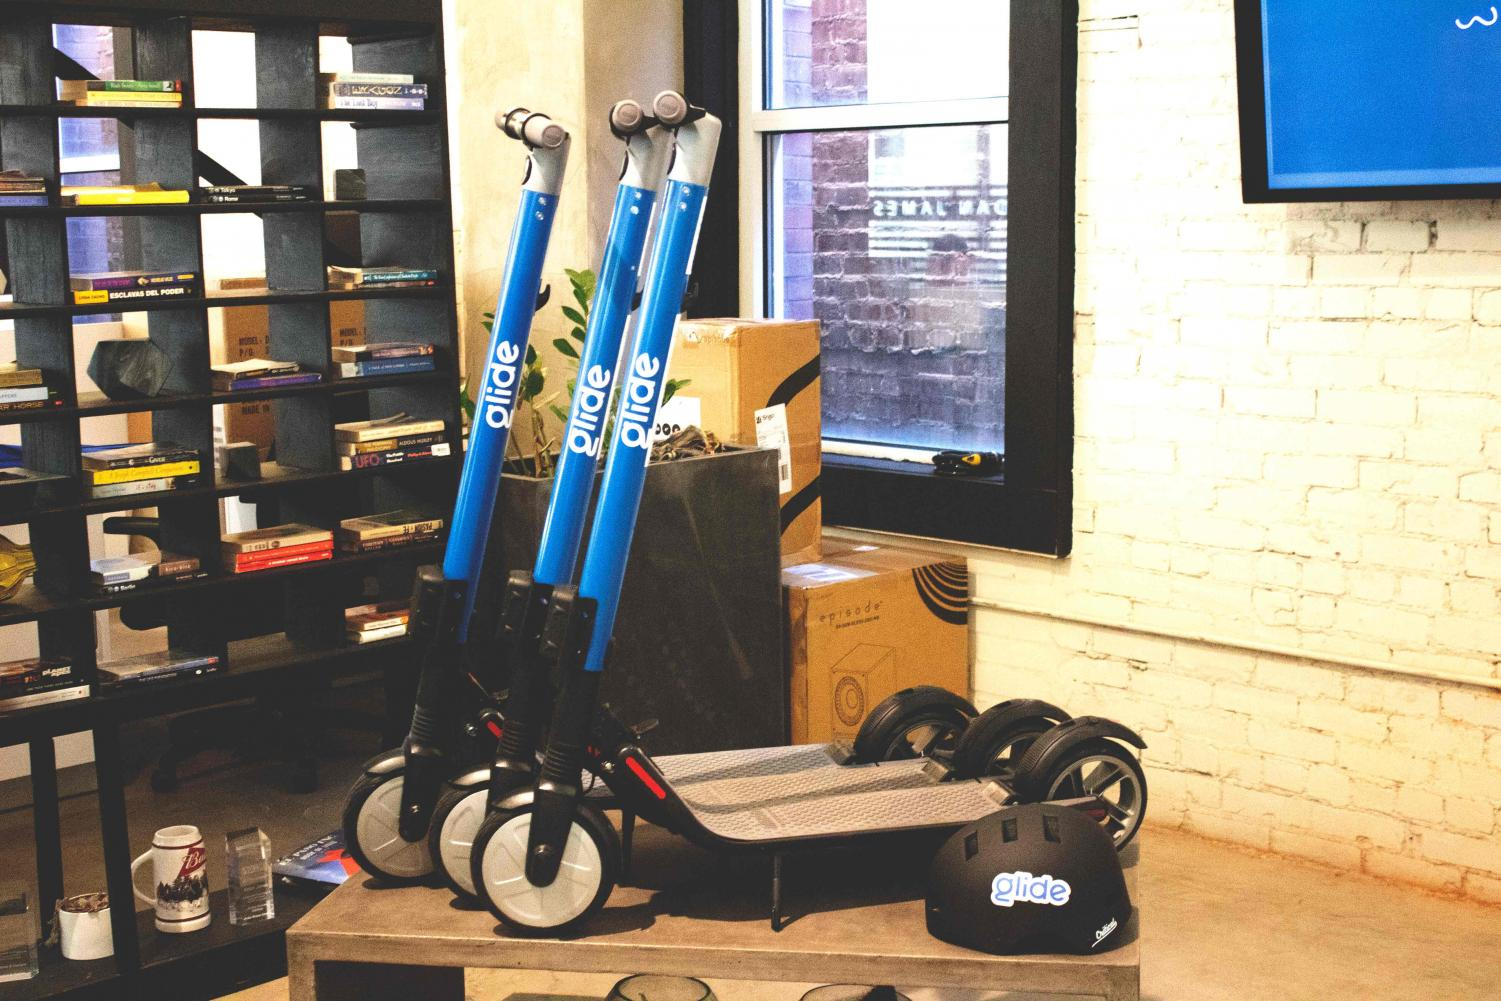 Glide scooters are similar to the electric scooters that have been popping up around the country, except Glide is a local start-up